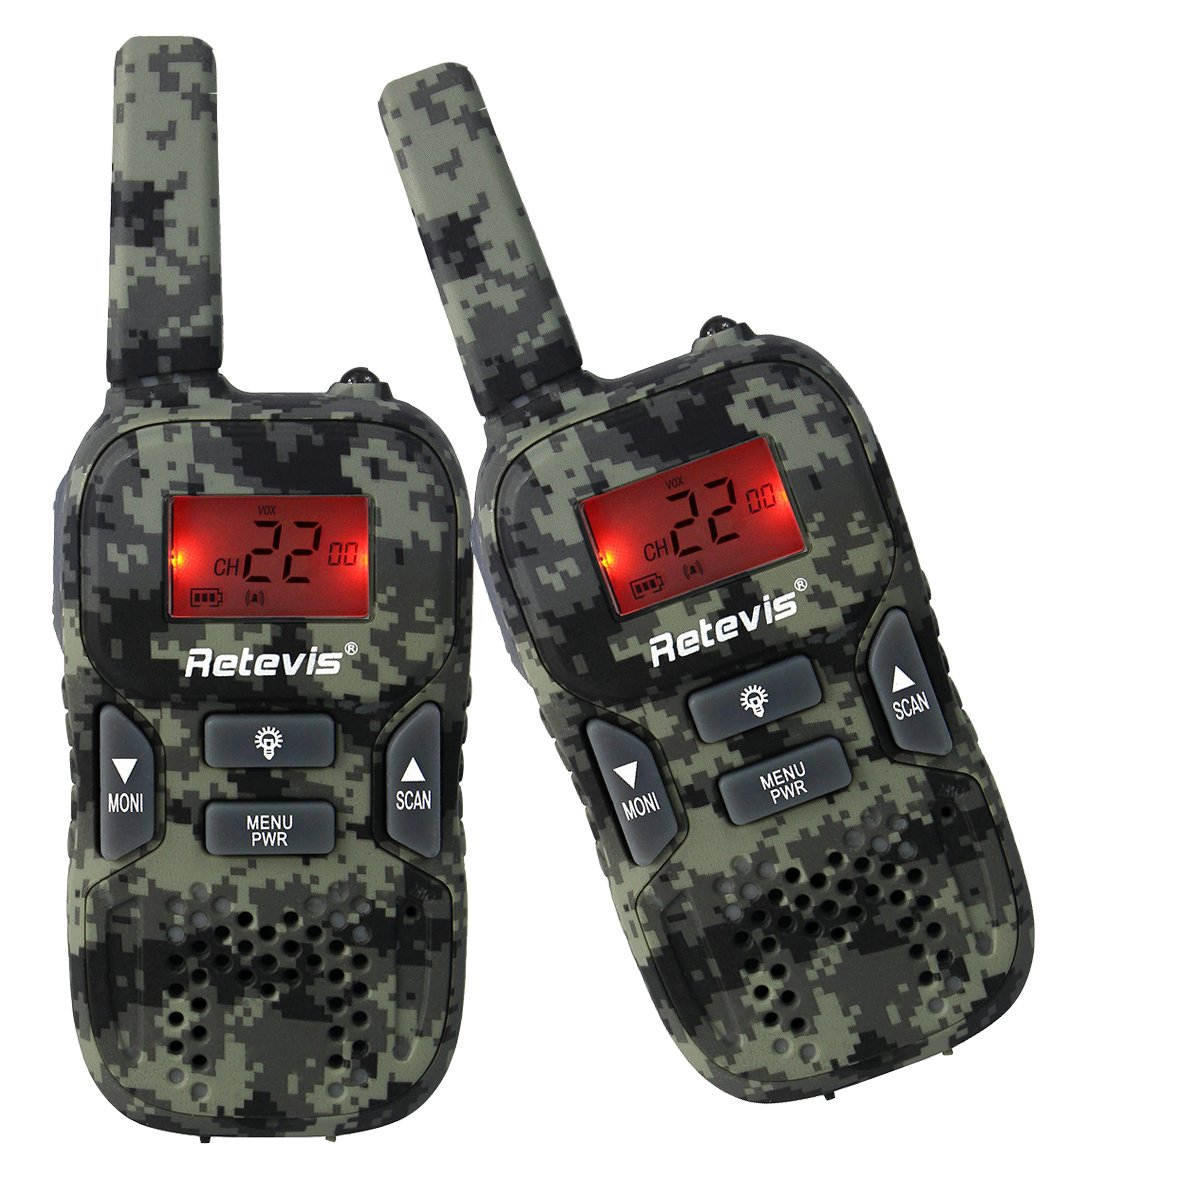 Retevis RT33 Kids Walkie Talkies 0.5W 22CH FRS Walkie Talkies Out Door Toy for Kids(1 Pair Camouflage)